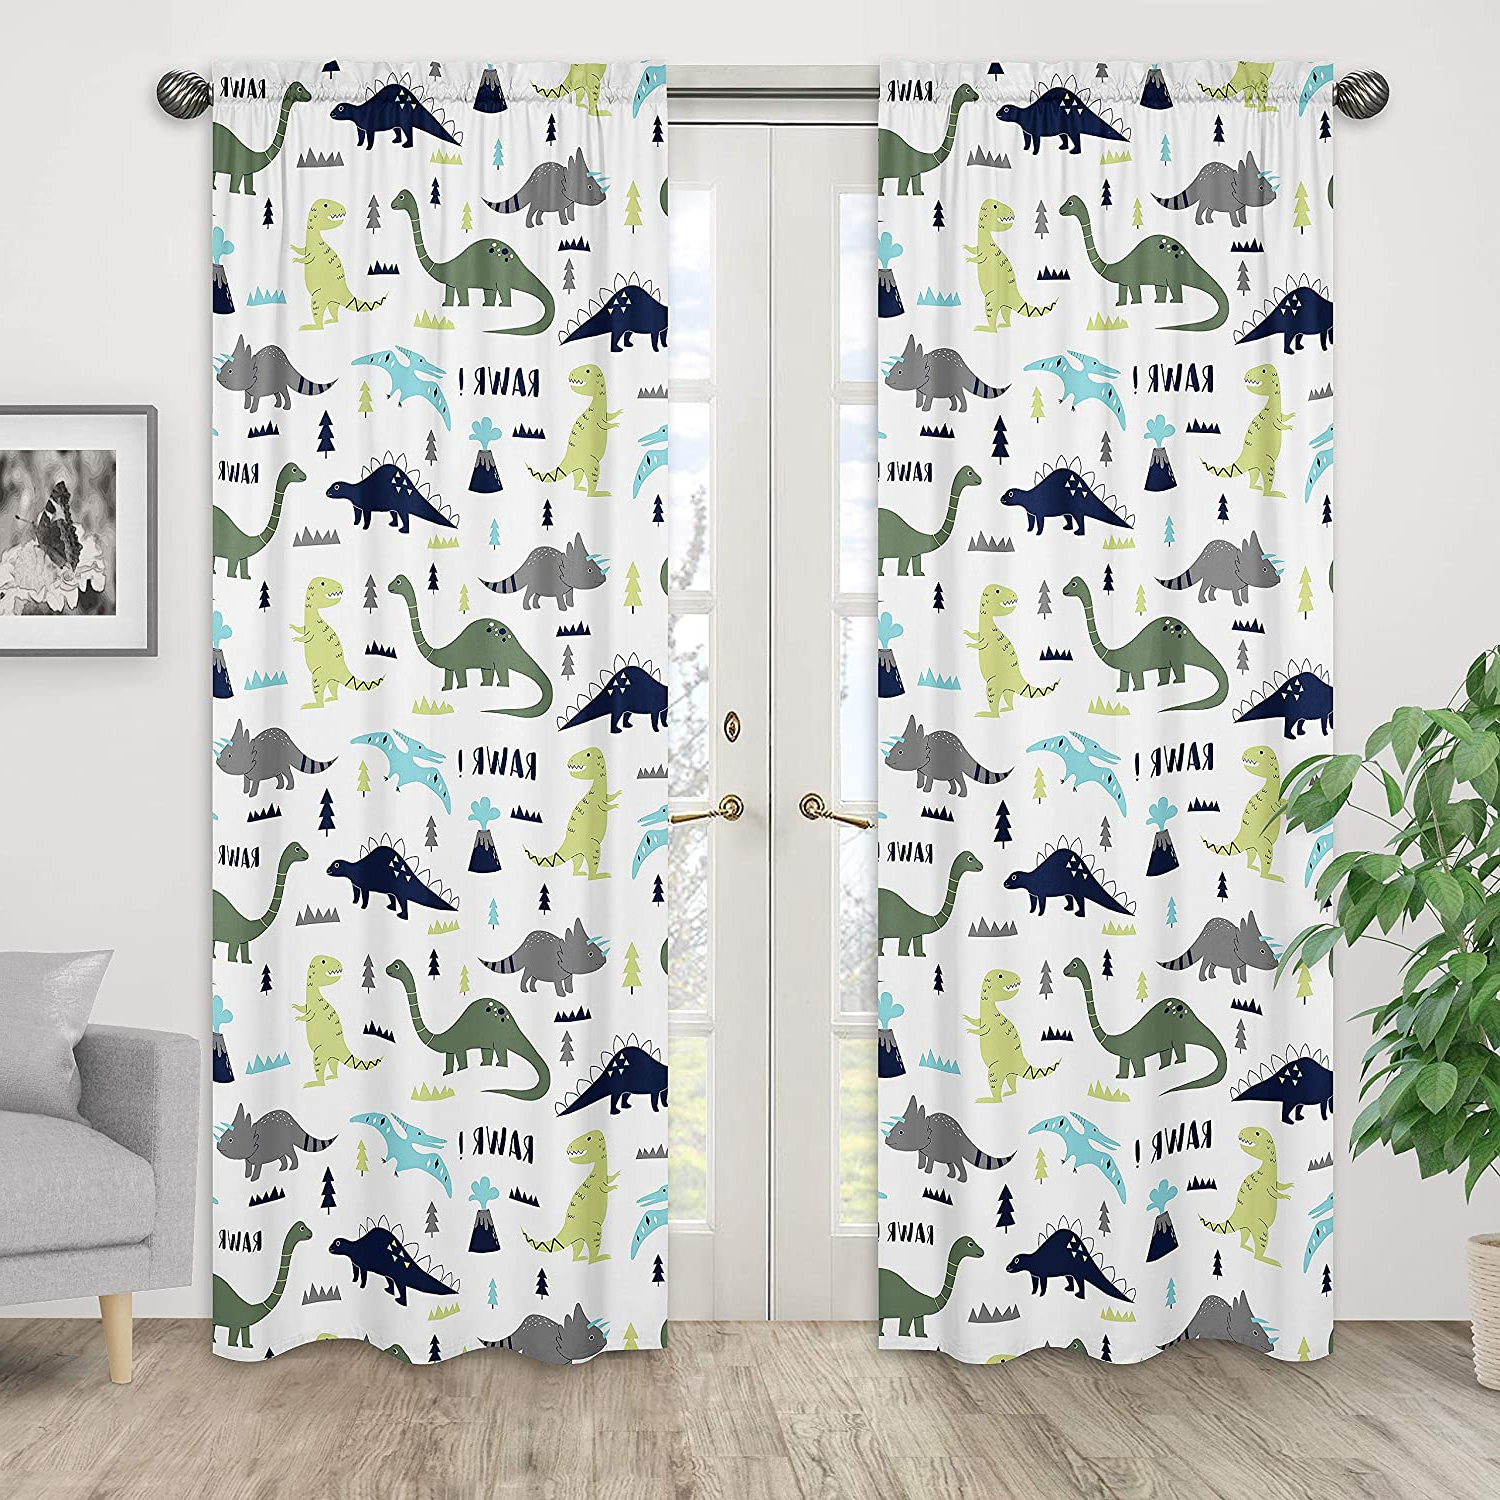 Blended Fabric Mod Dinosaur 3 Piece Wall Hangings Set Within Most Recently Released Blue And Green Modern Dinosaur Bedroom Decor Window Treatment Panels – Set Of (View 17 of 20)